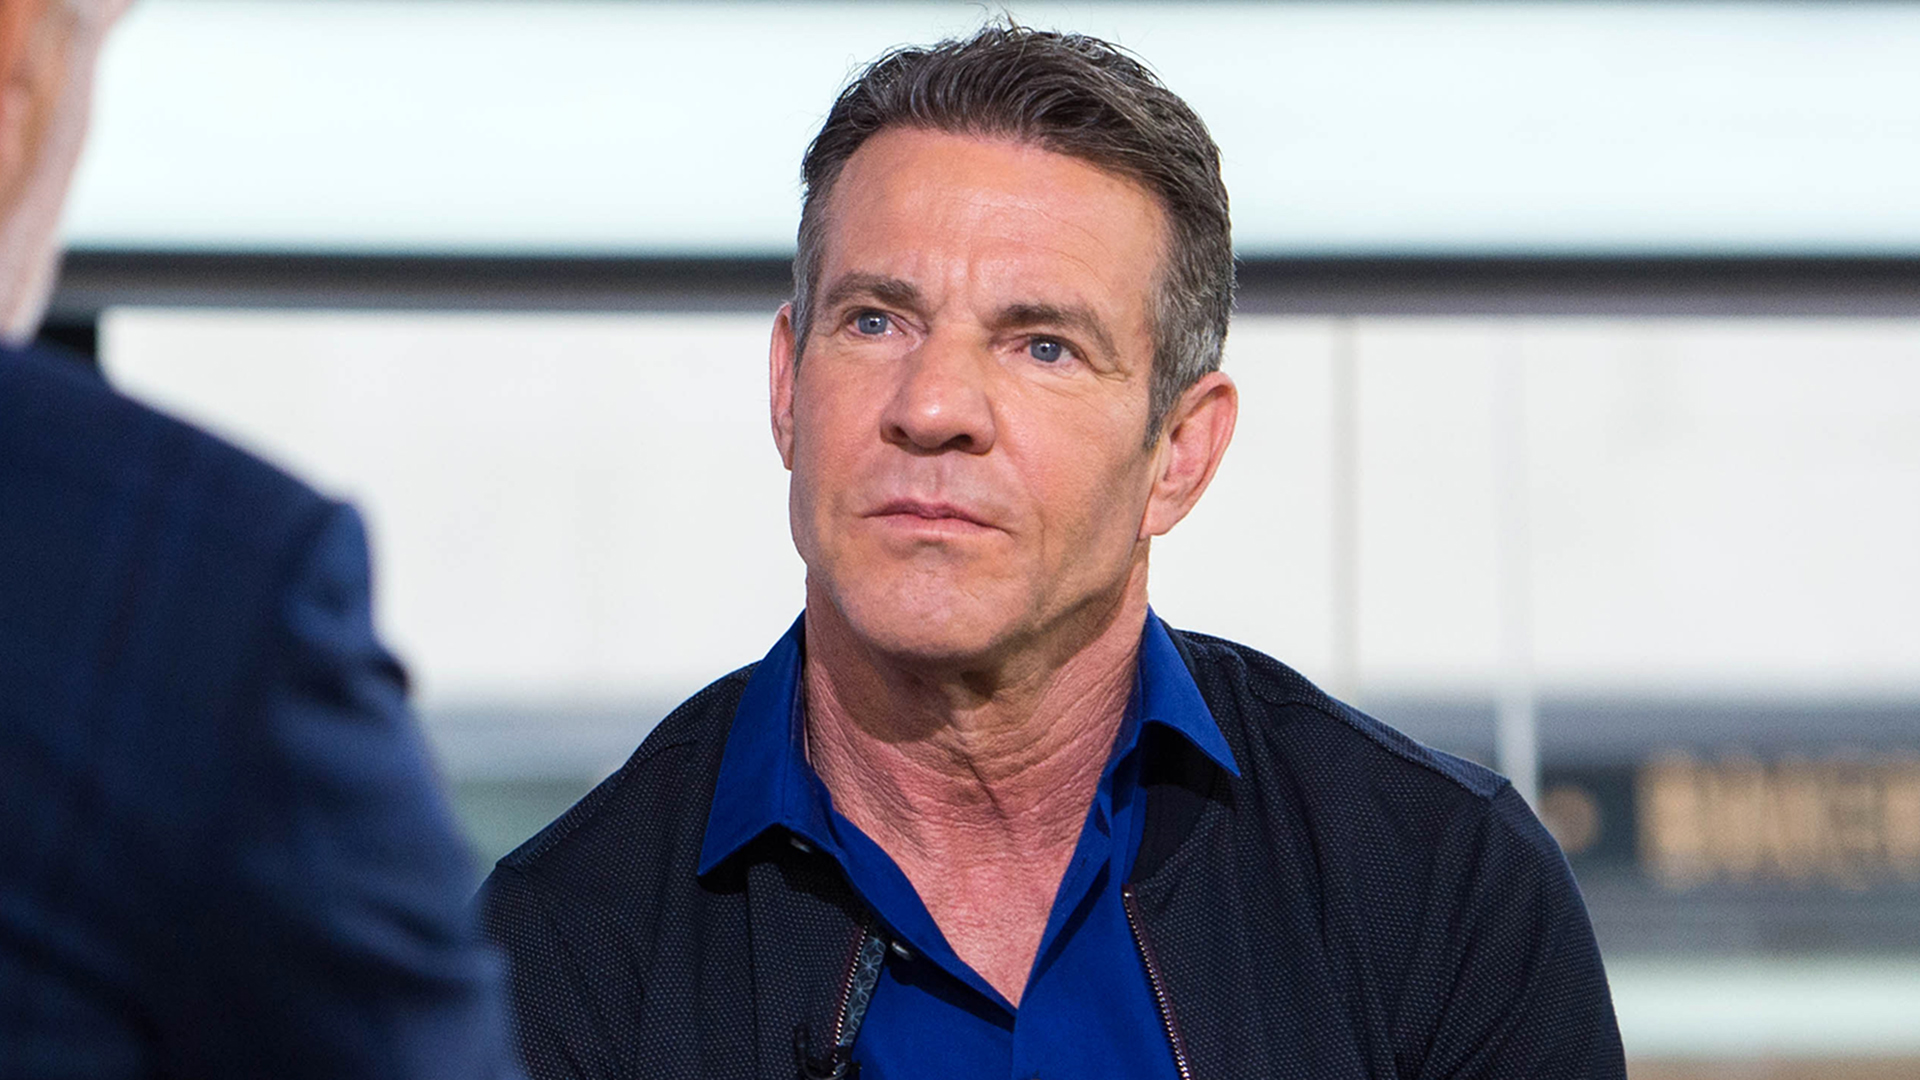 Dennis Quaid. TODAY, January 25th 2016.